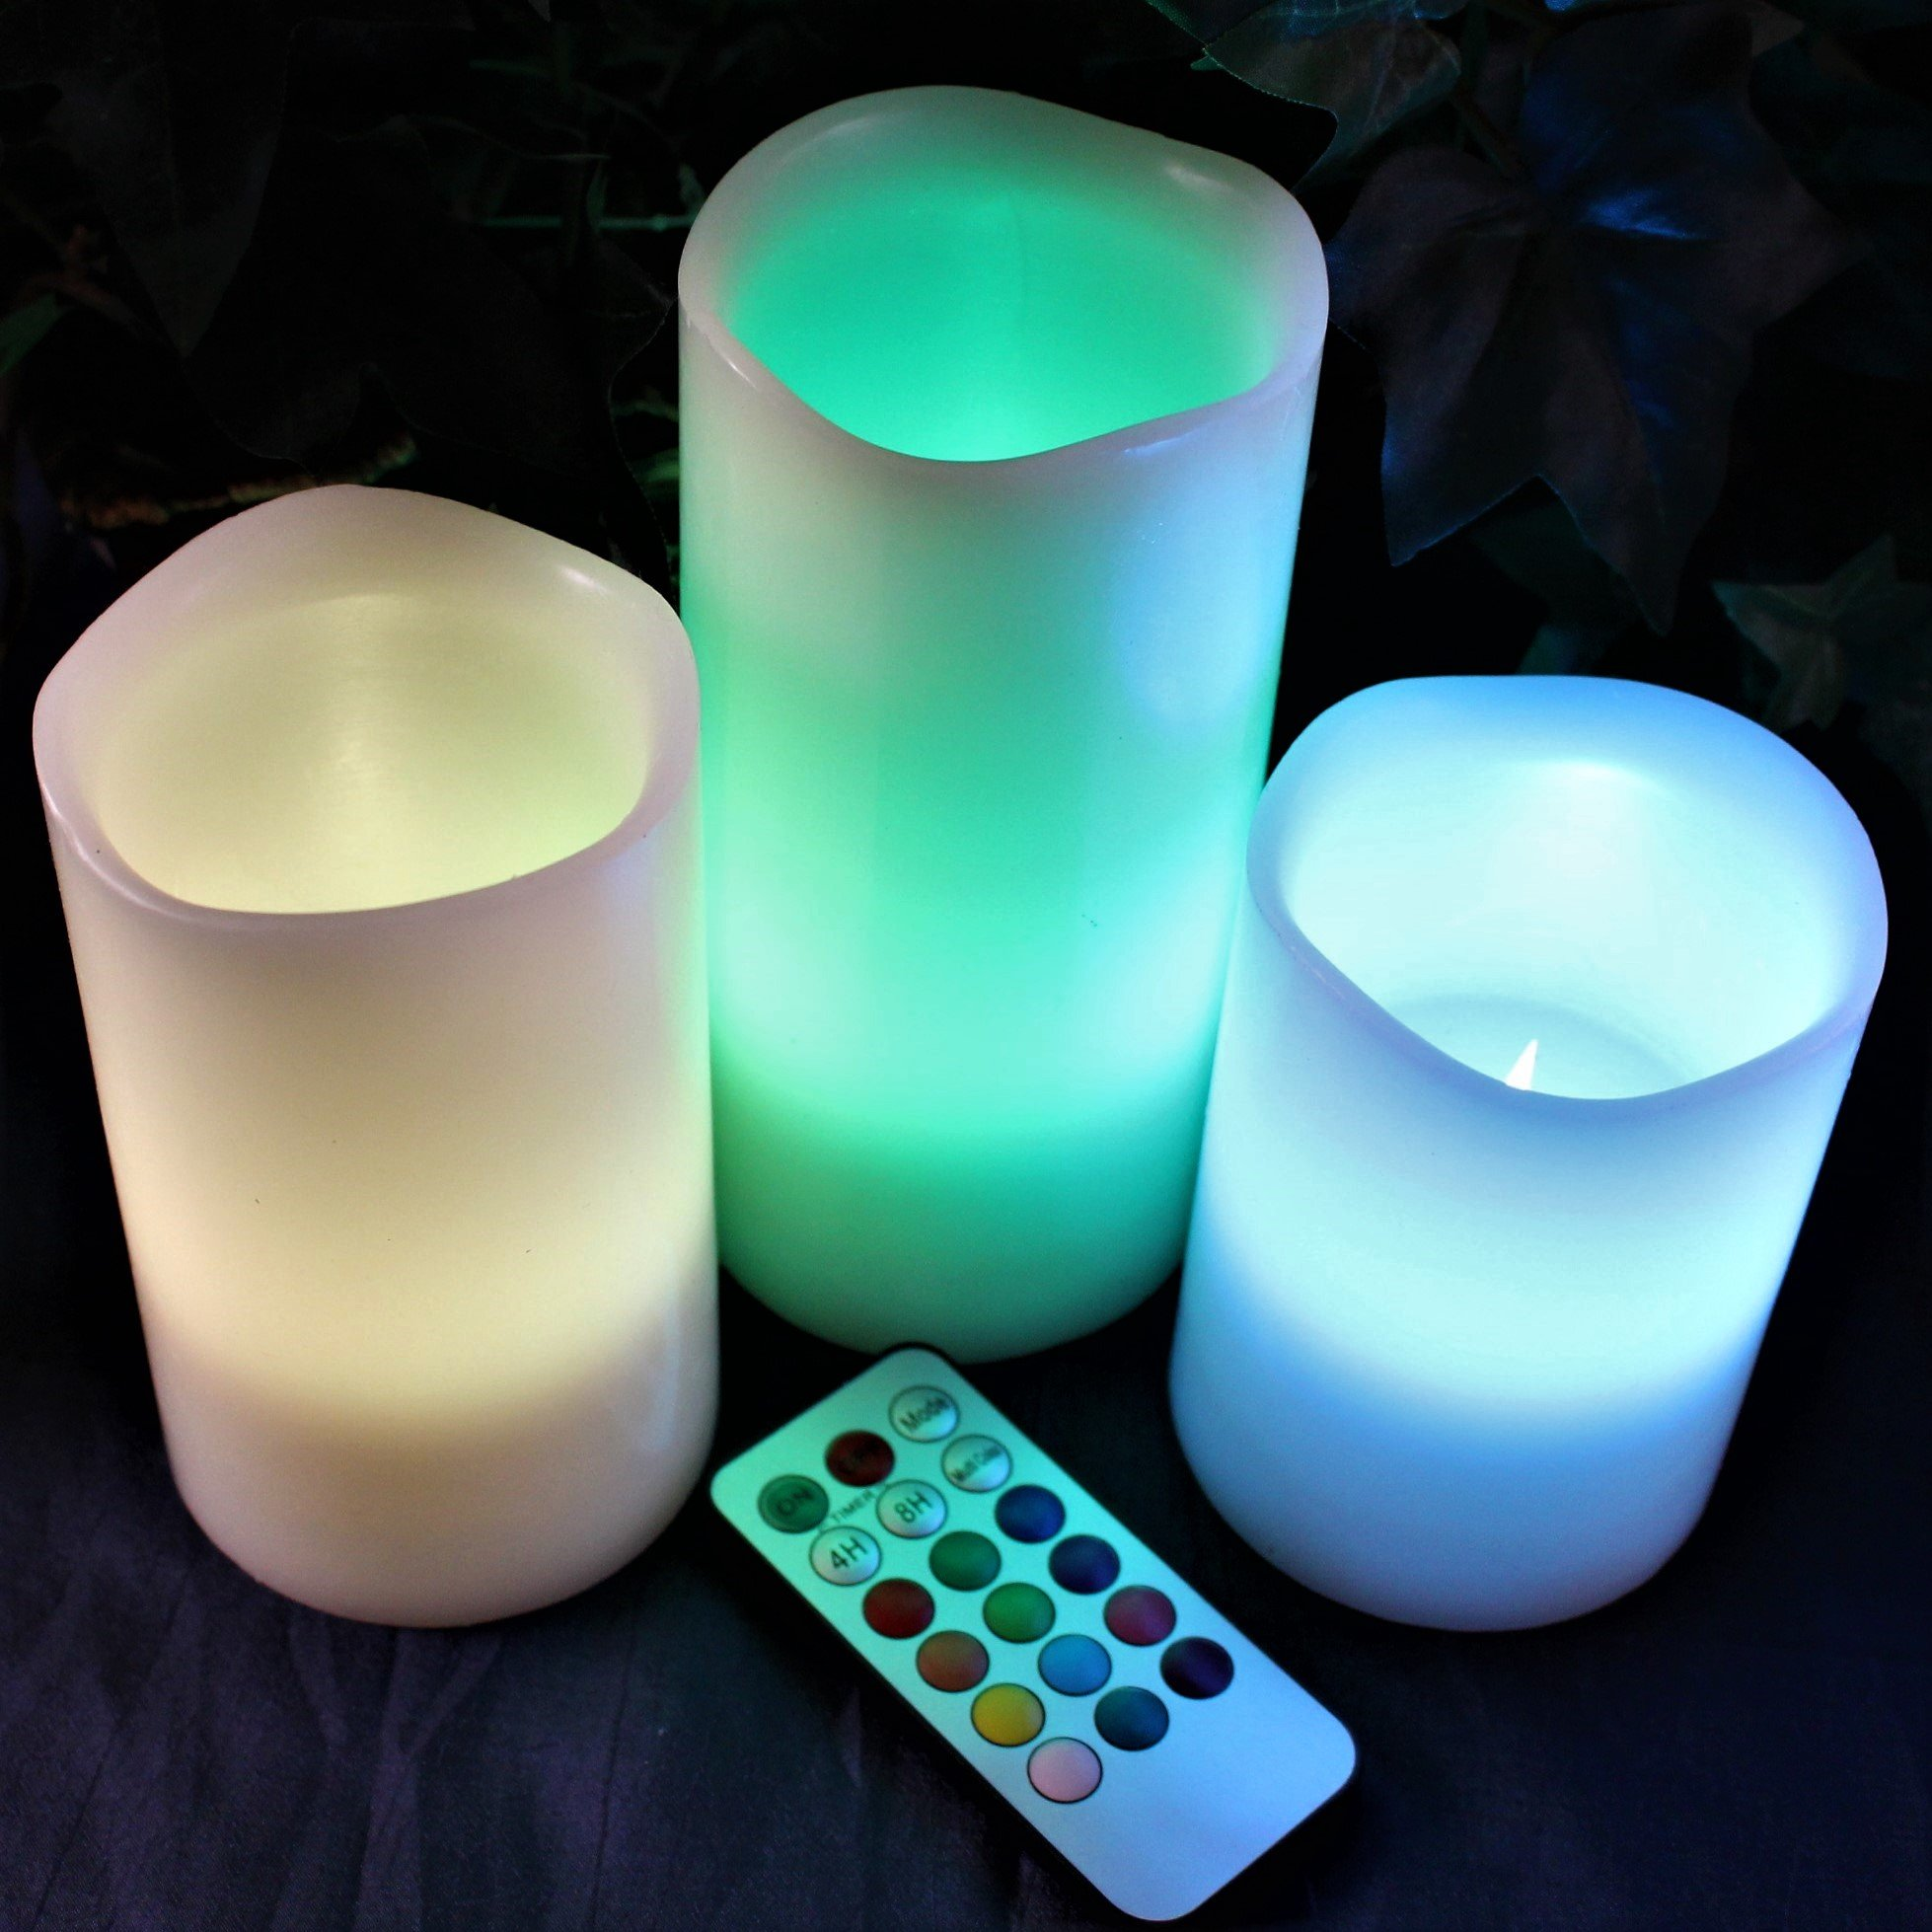 LED Lytes Flickering Flameless Candles - Battery Operated Candles Vanilla Scented Set of 3 Round Ivory Wax Flickering Multi Colored Flame, auto-Off Timer Remote Control Weddings Gifts by LED Lytes (Image #5)